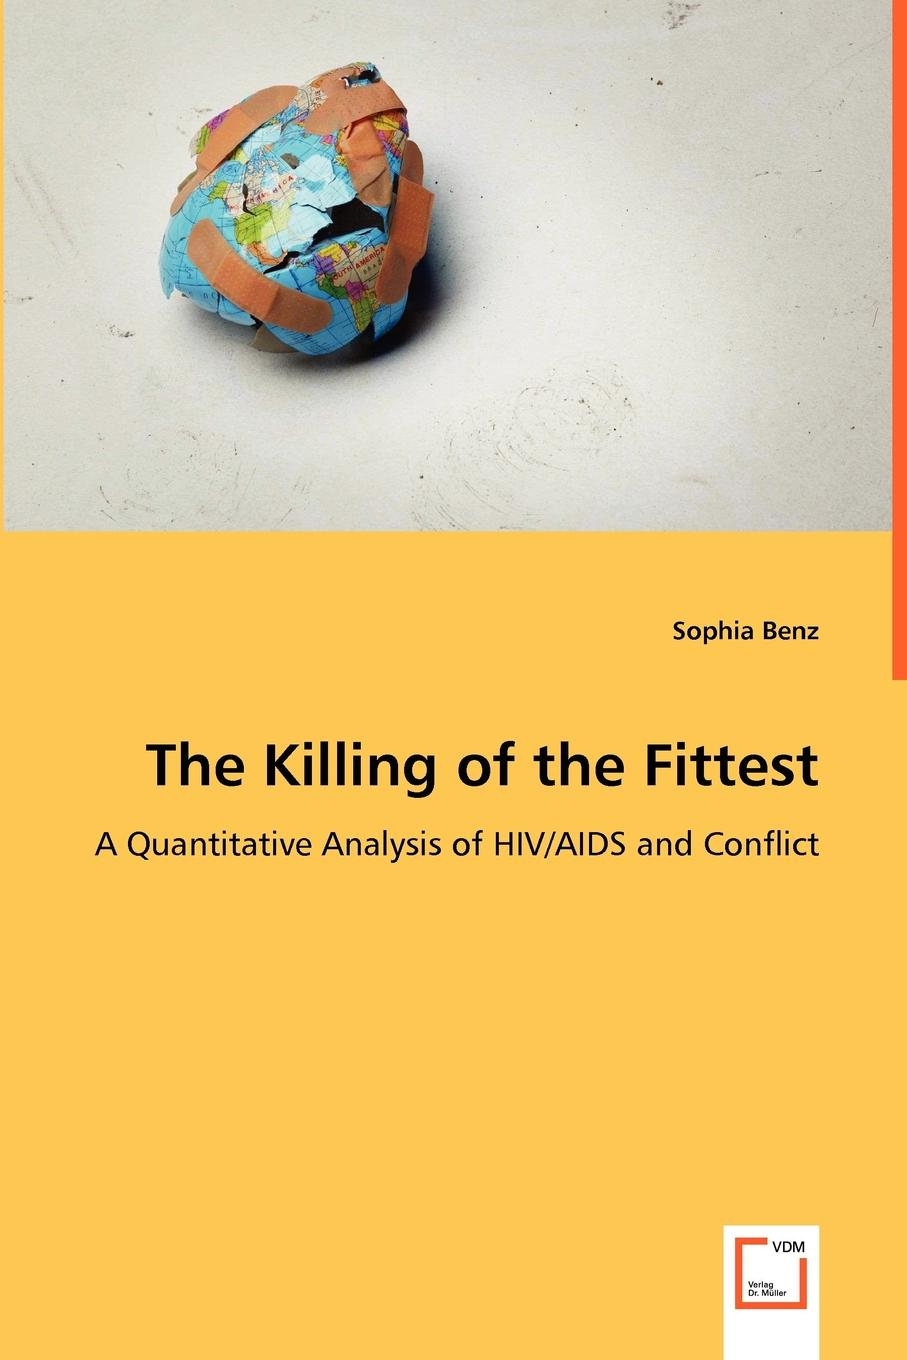 Sophia Benz The Killing of the Fittest - A Quantitative Analysis of HIV/AIDS and Conflict